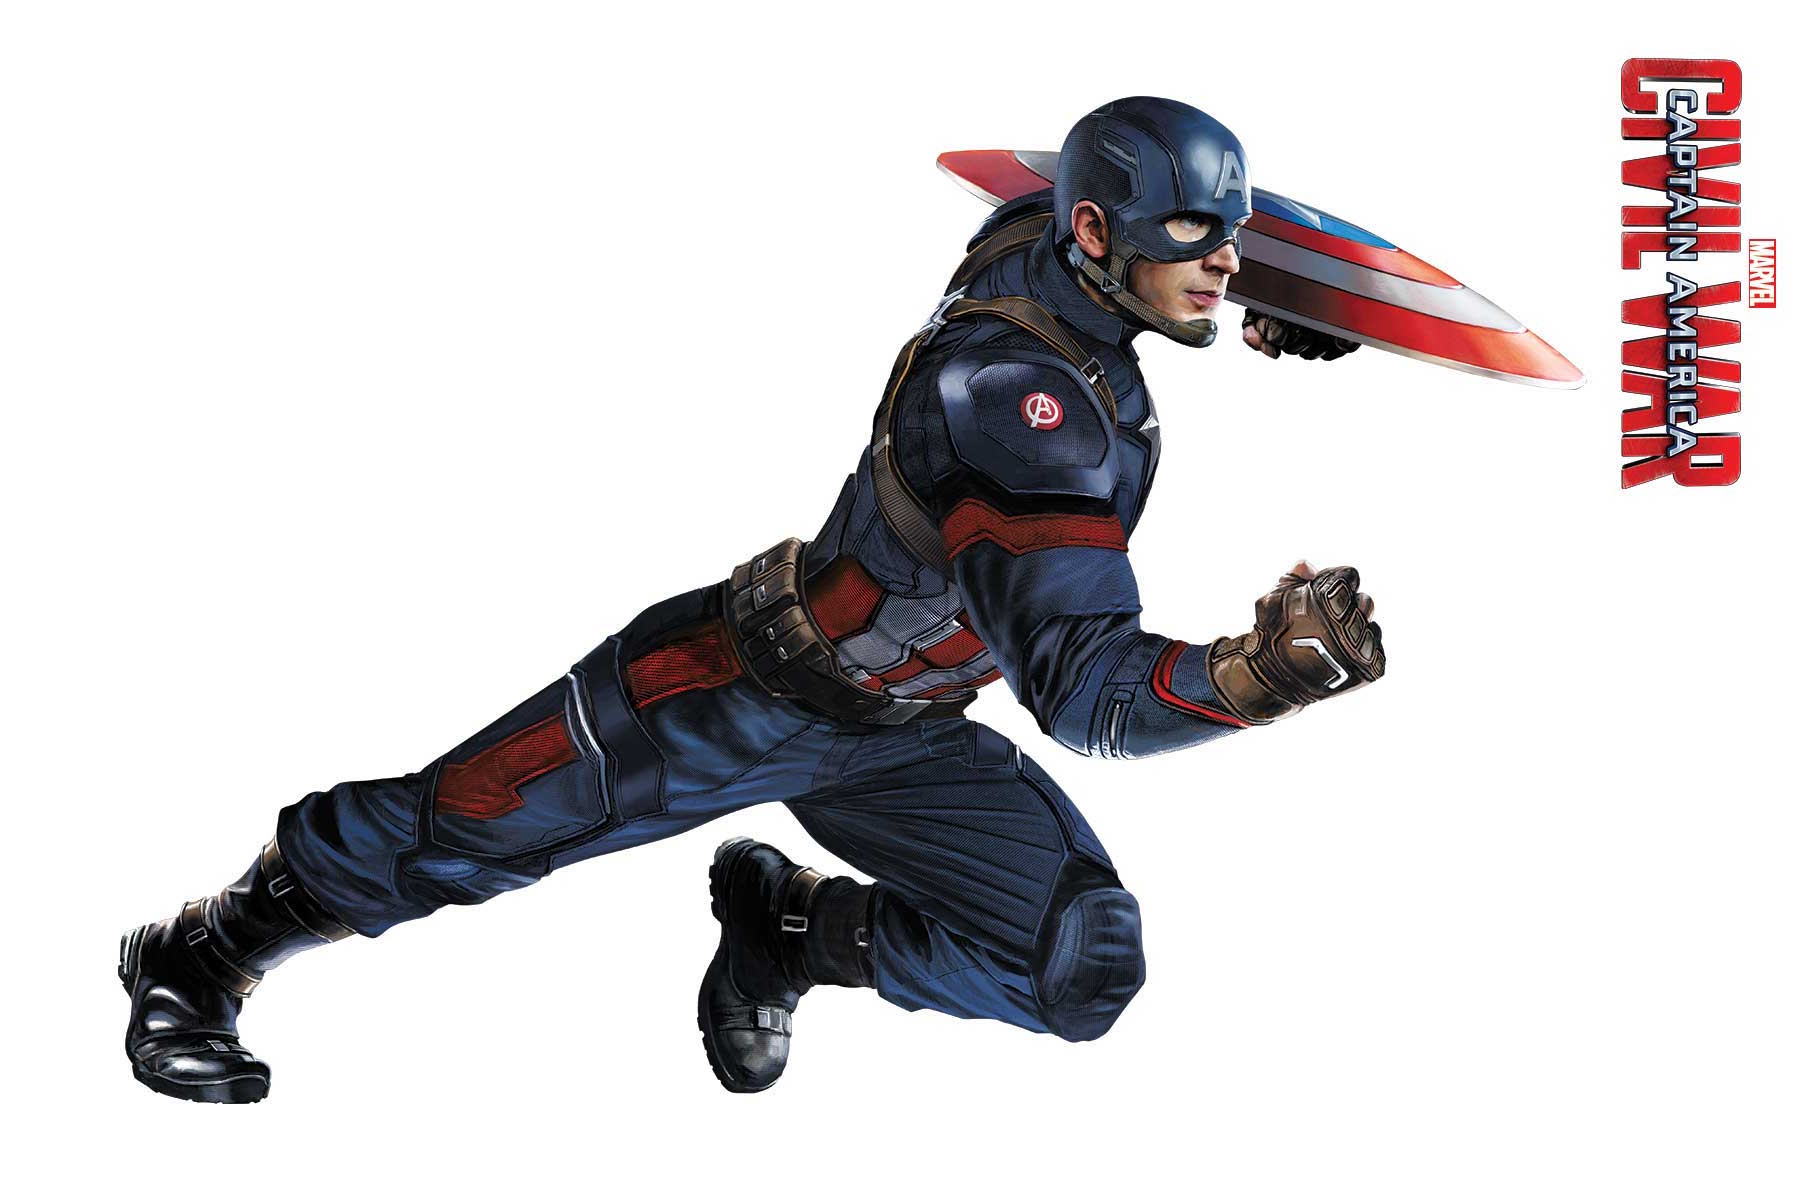 Captain America: Civil War - Heroes Ready For Action